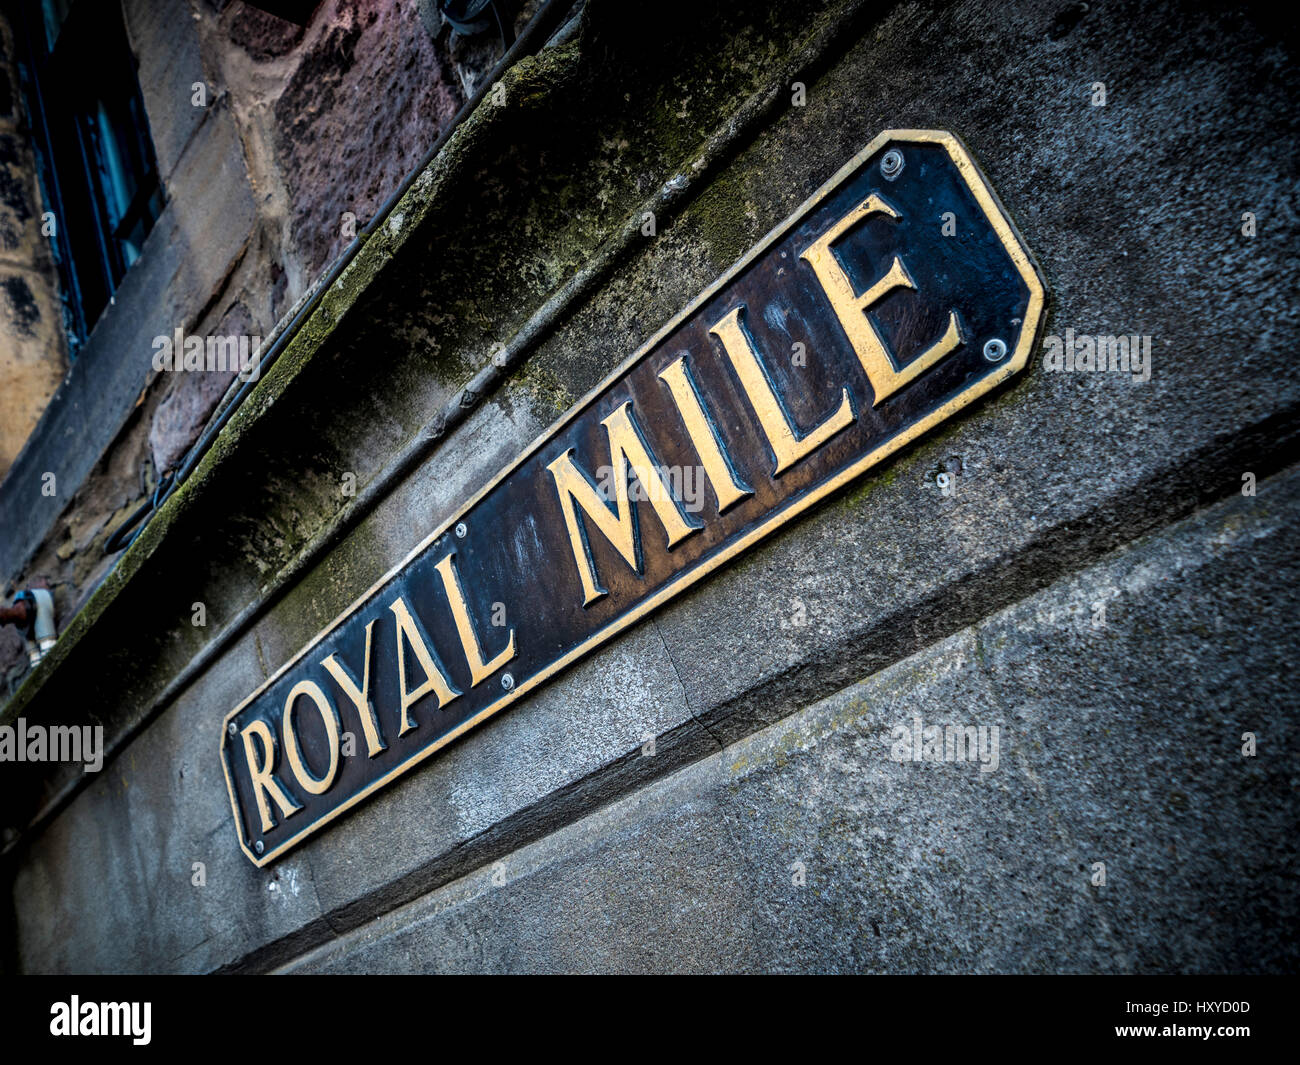 Royal Mile sign, Edinburgh, Scotland. - Stock Image